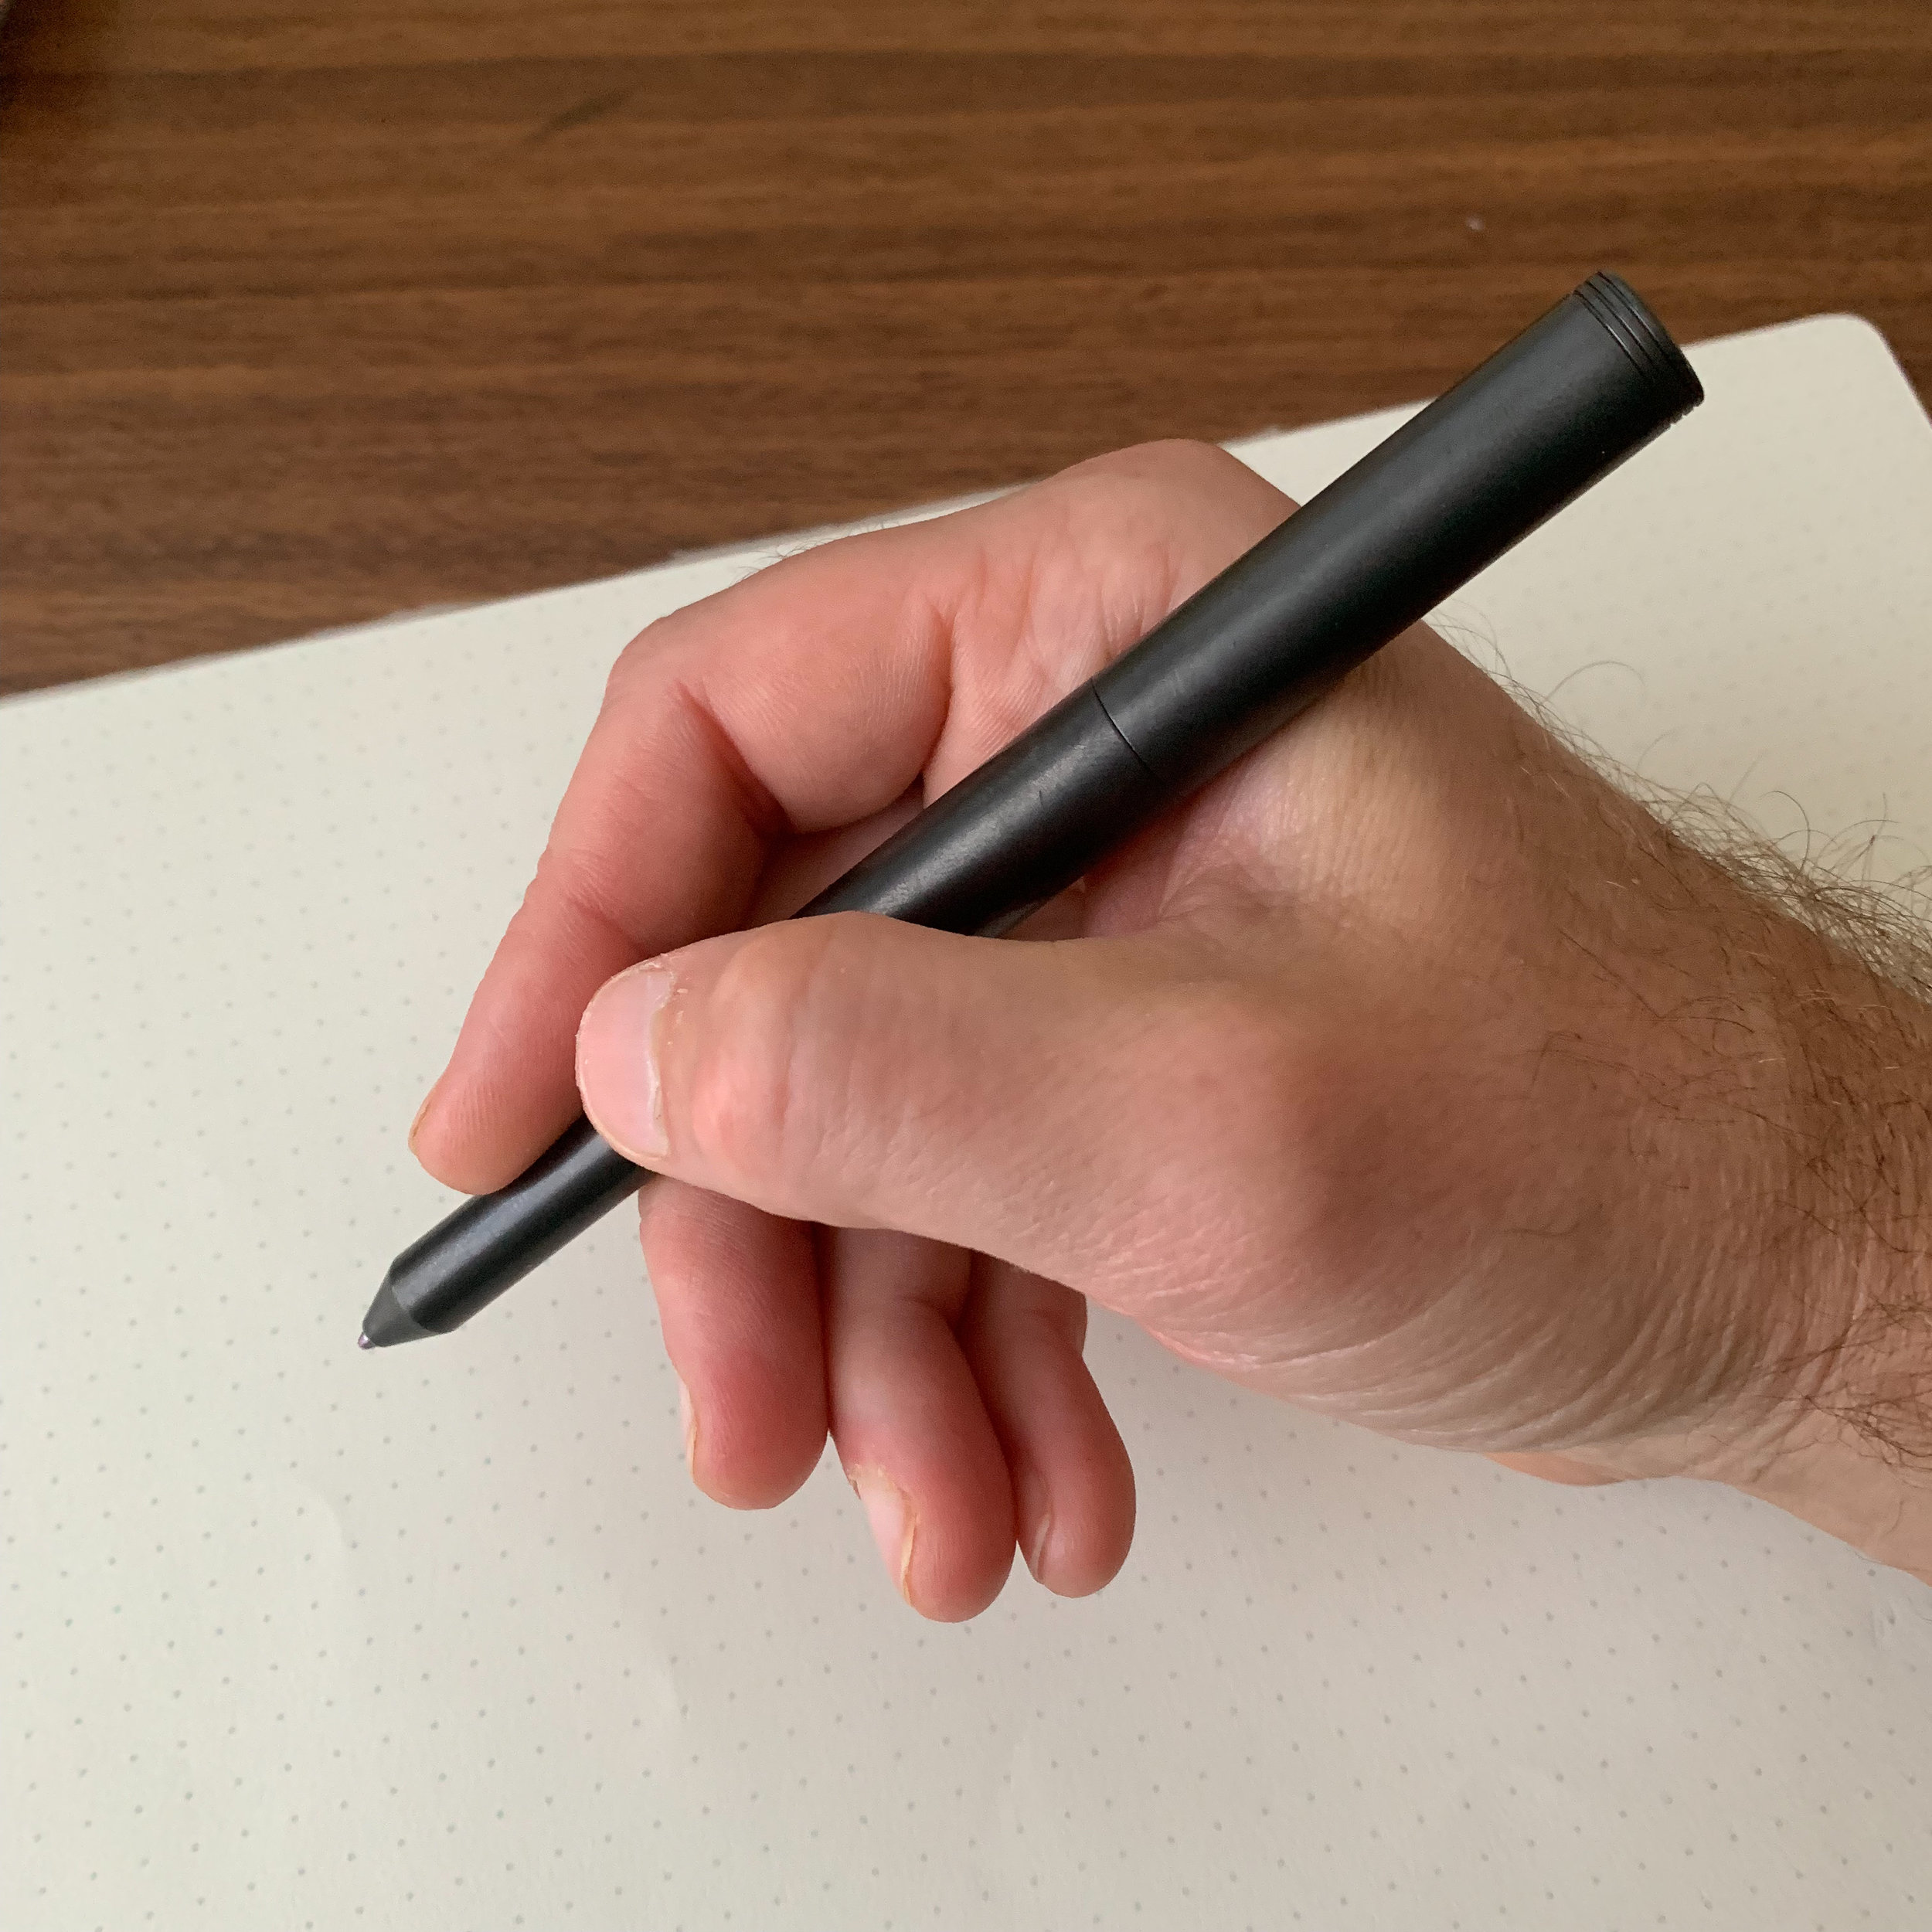 The Schon DSGN Classic posted. Since the pen is well balanced and the cap threads on the back, I have no issues posting this one. Those with smaller hands may find it too back-weighted to use comfortably posted.